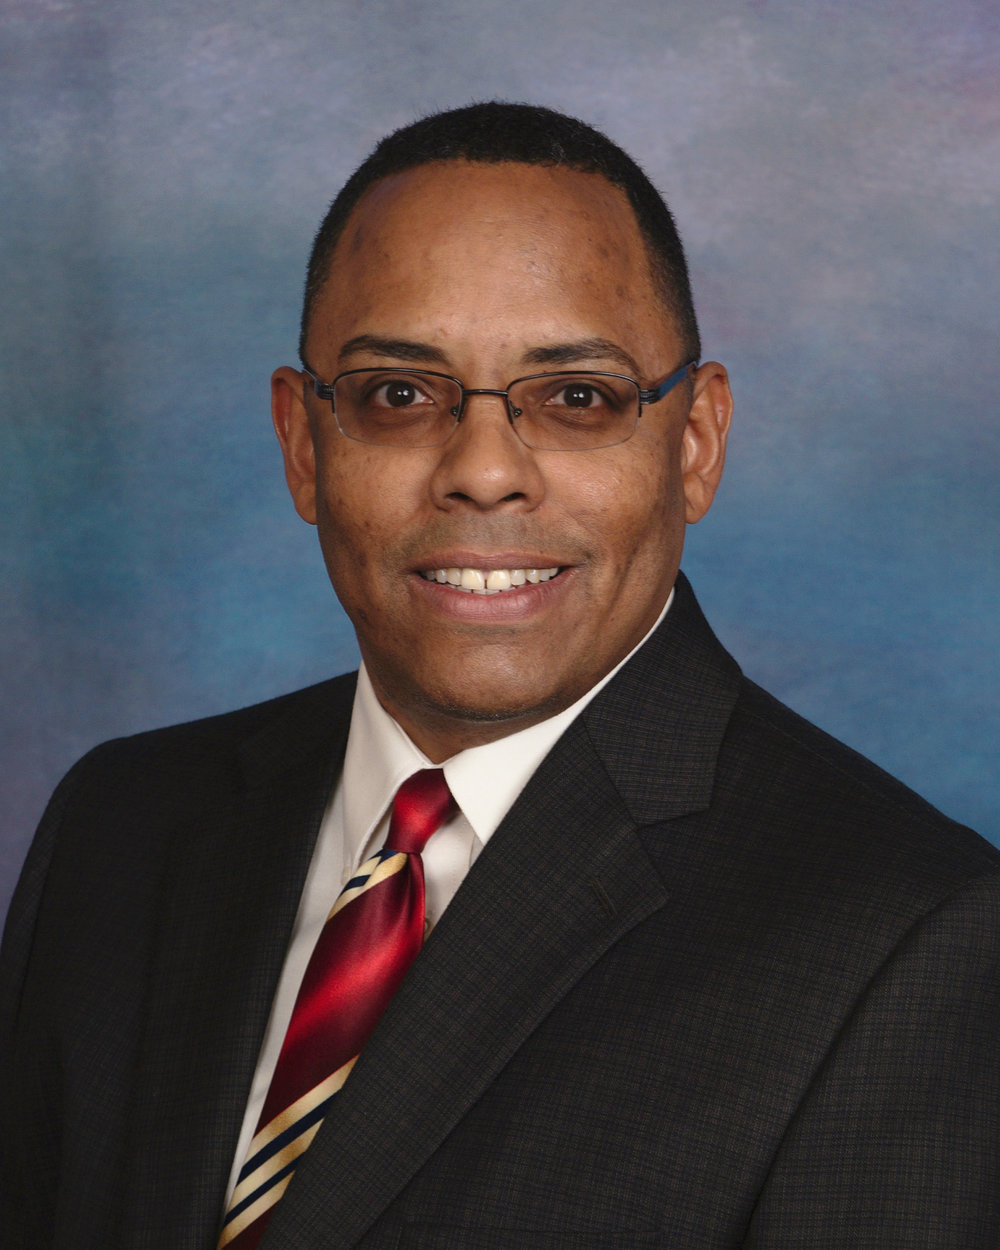 GEORGE MATEO, PRMG ORANGE PARK BRANCH MANAGER